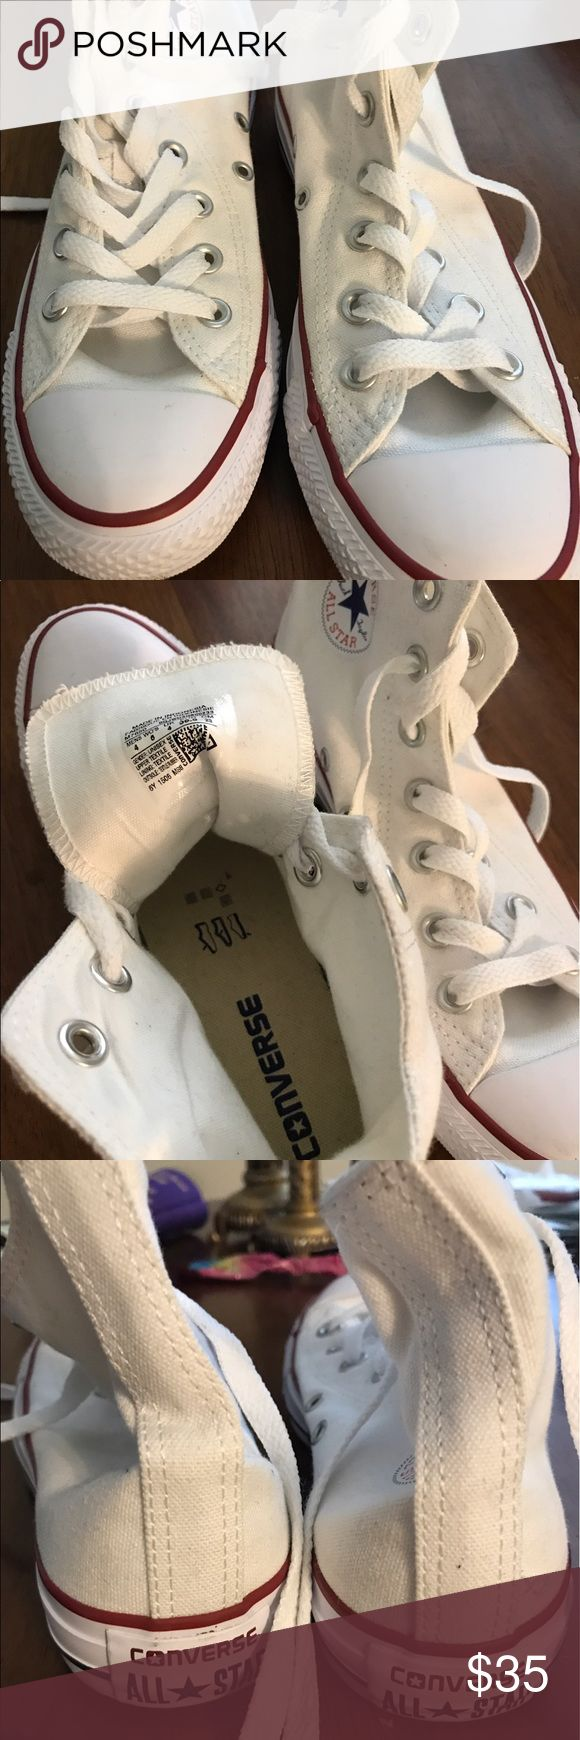 All the rage Converse high top White Converse high top worn only once.  Unisex so could be for boy, girl, or lady. Converse Shoes Sneakers